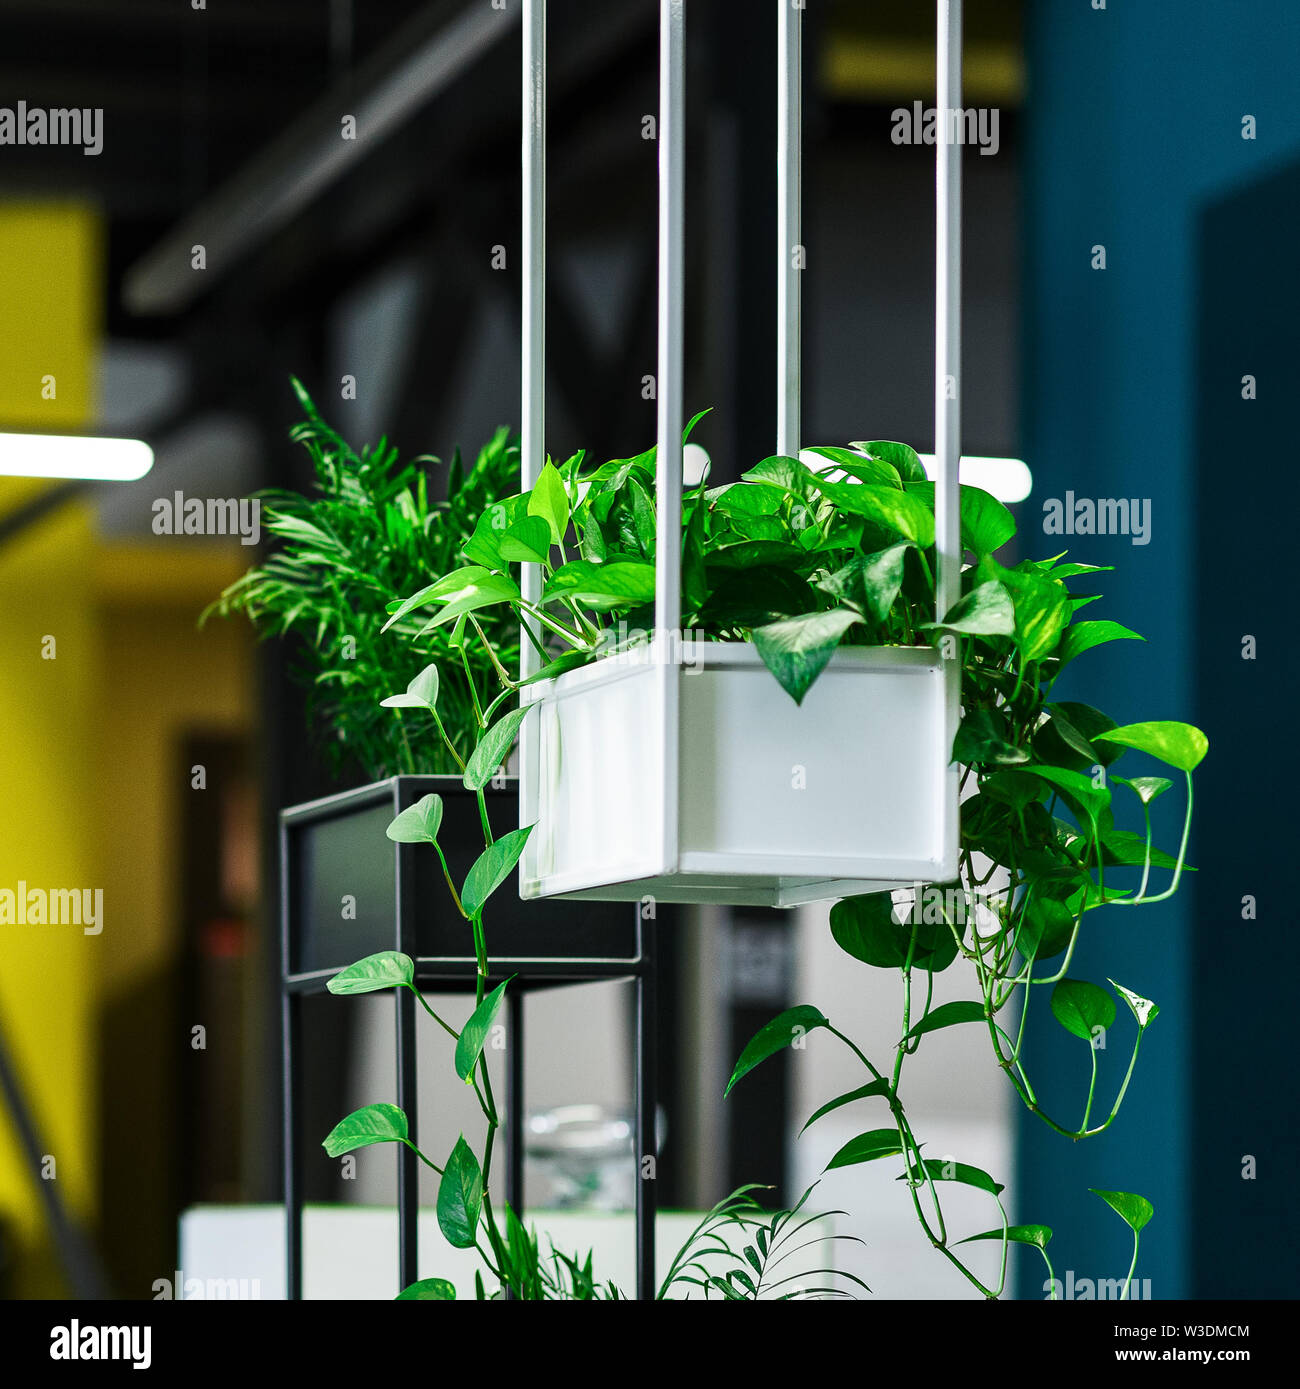 Green Plants In Modern Office Interior On Blurred Background Stock